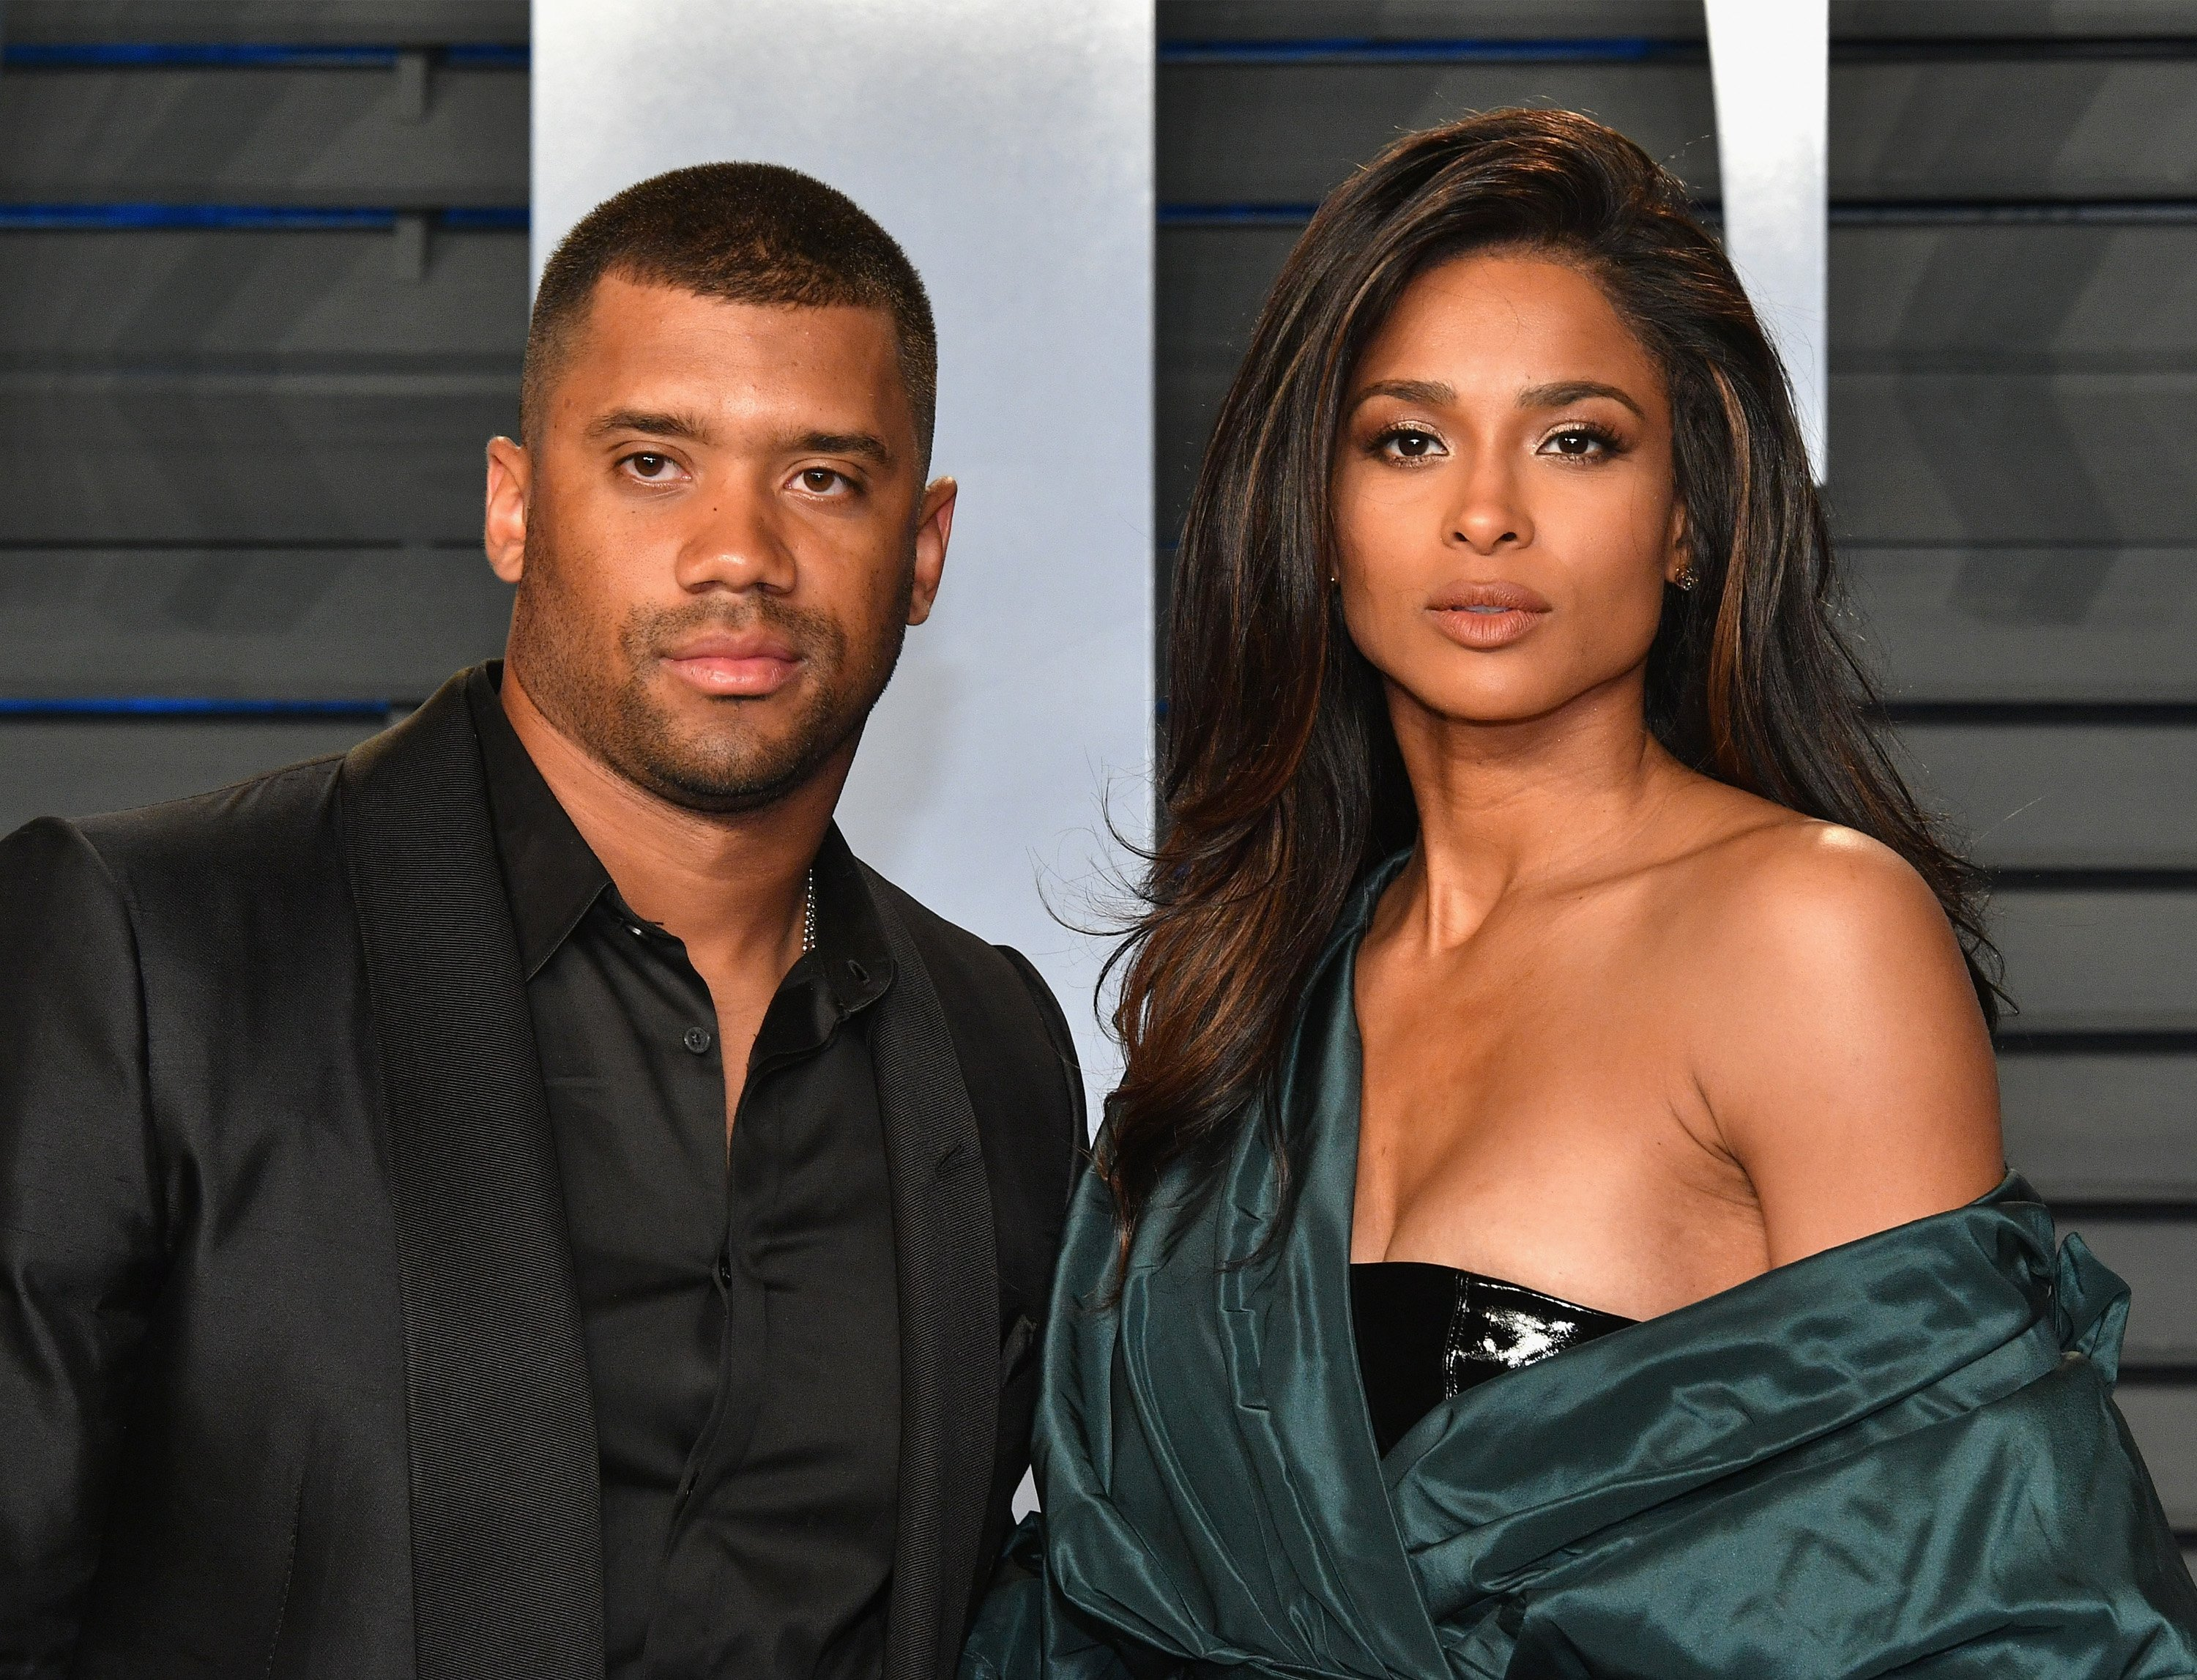 Russell Wilson and Ciara attend the 2018 Vanity Fair Oscar Party on March 4, 2018 in Beverly Hills, California. | Source: Getty Images